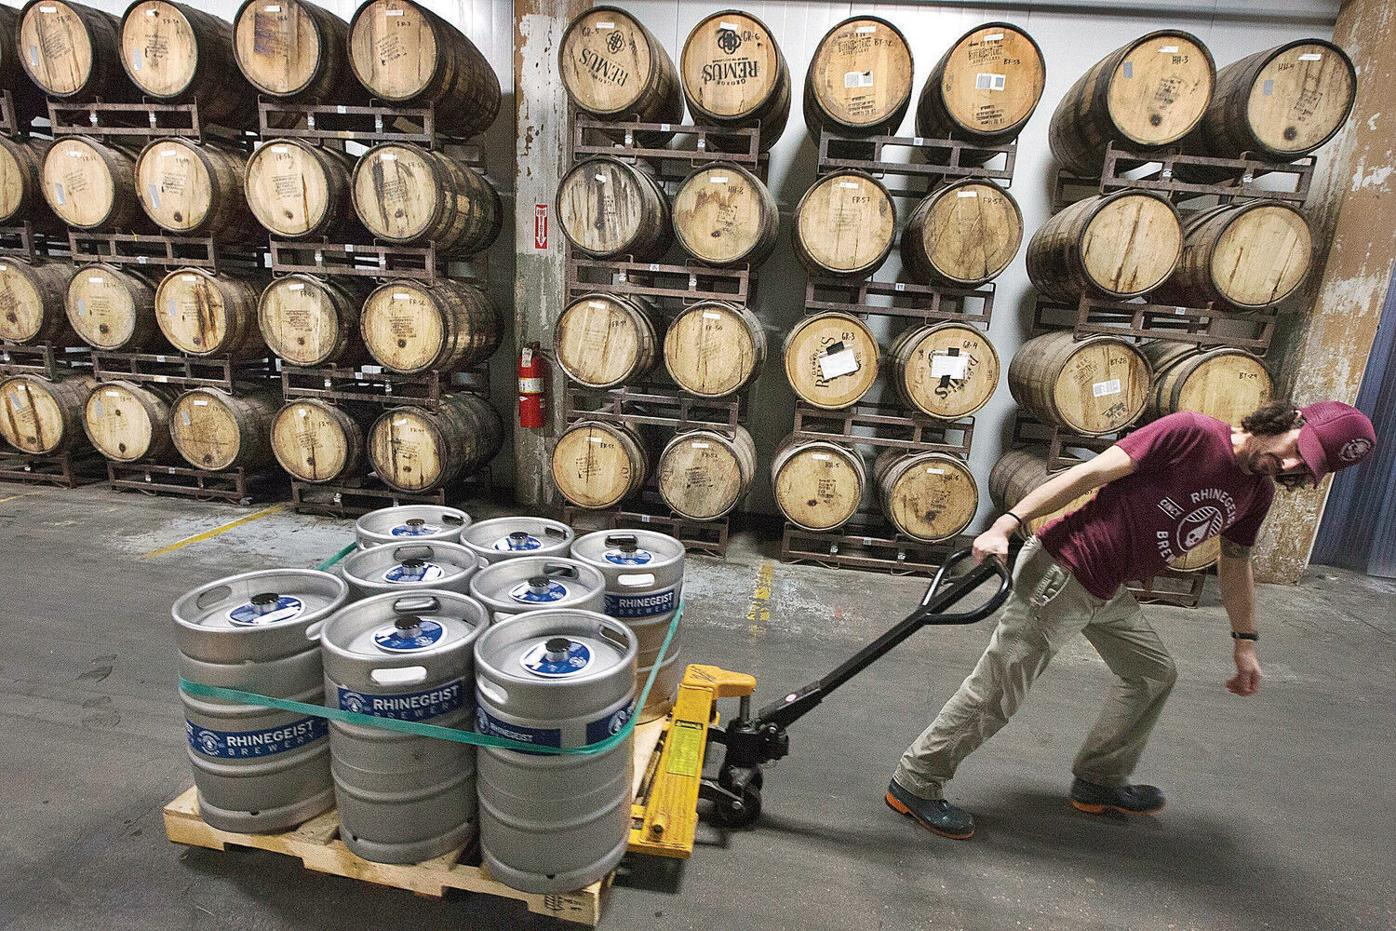 A better, more stable, drinkable beer? Thank you, Industrial Revolution